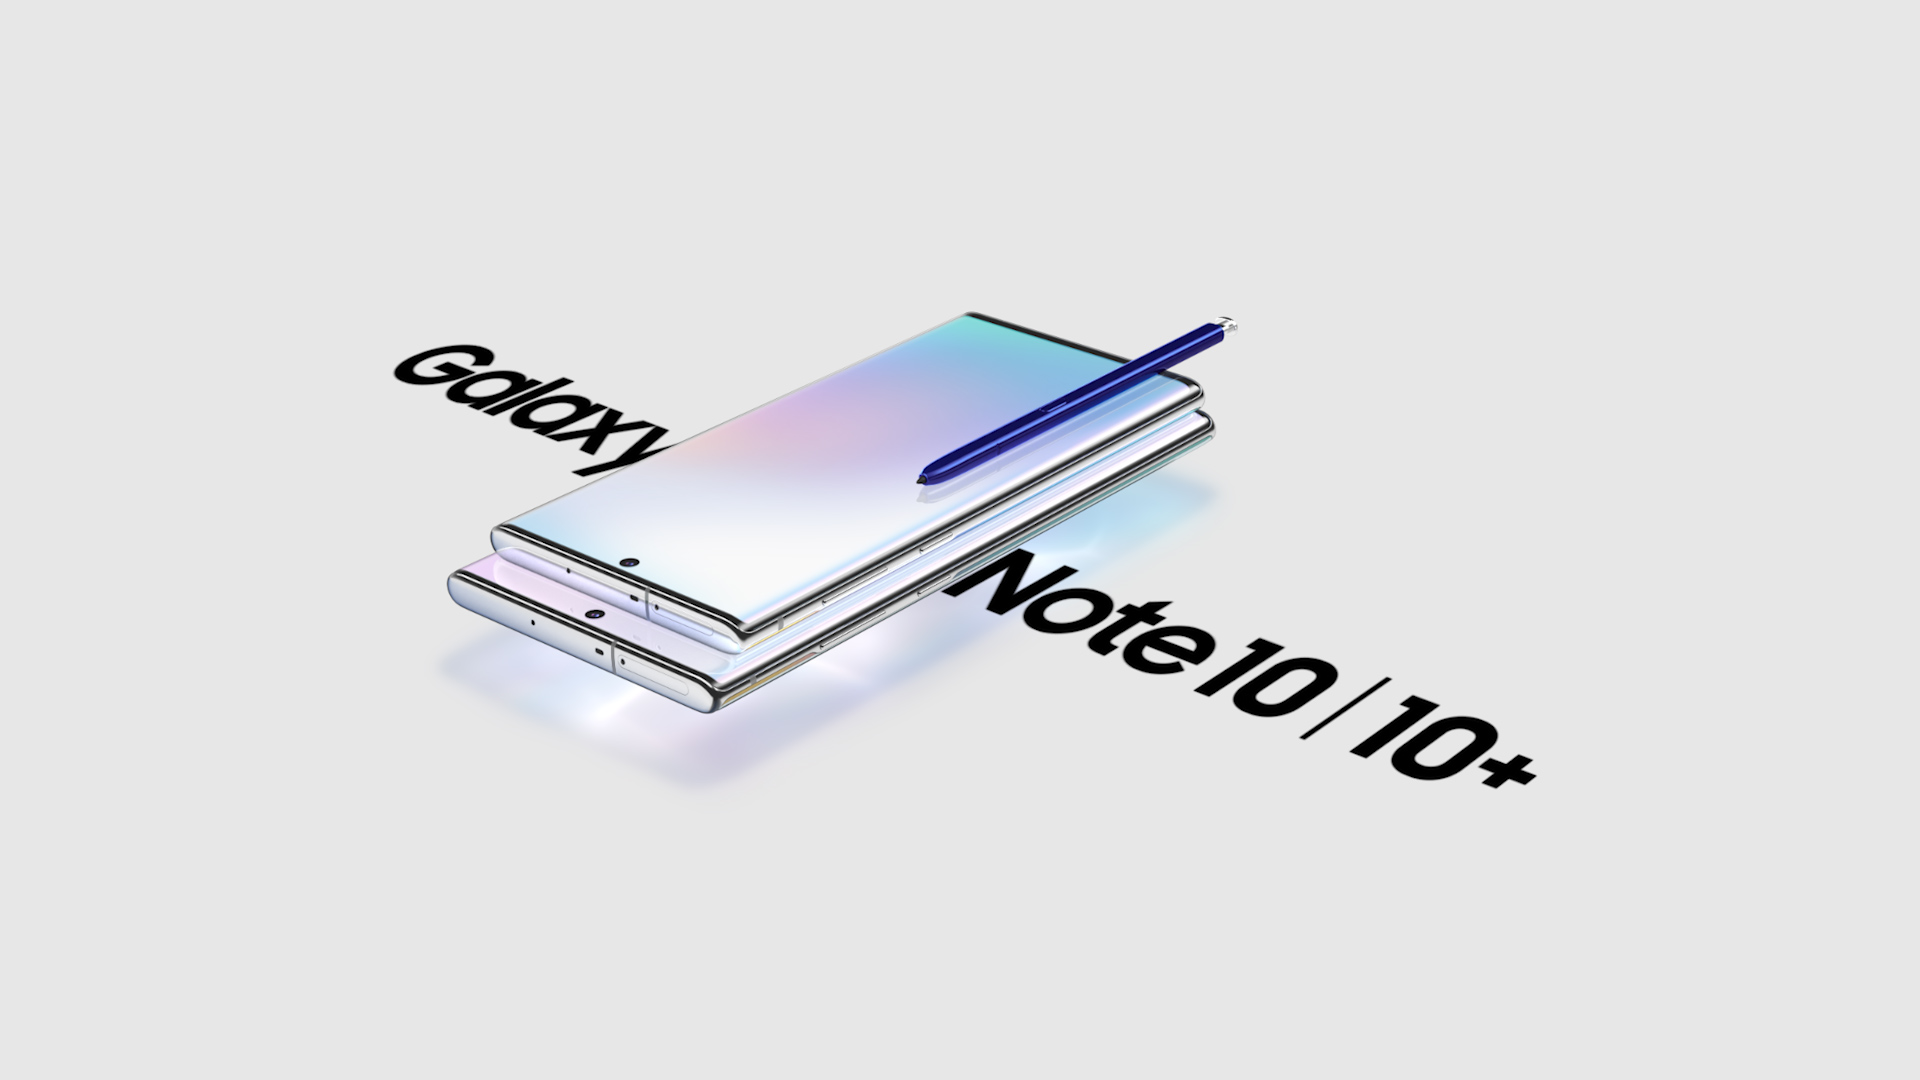 Samsung | Galaxy Note10 and Note 10+